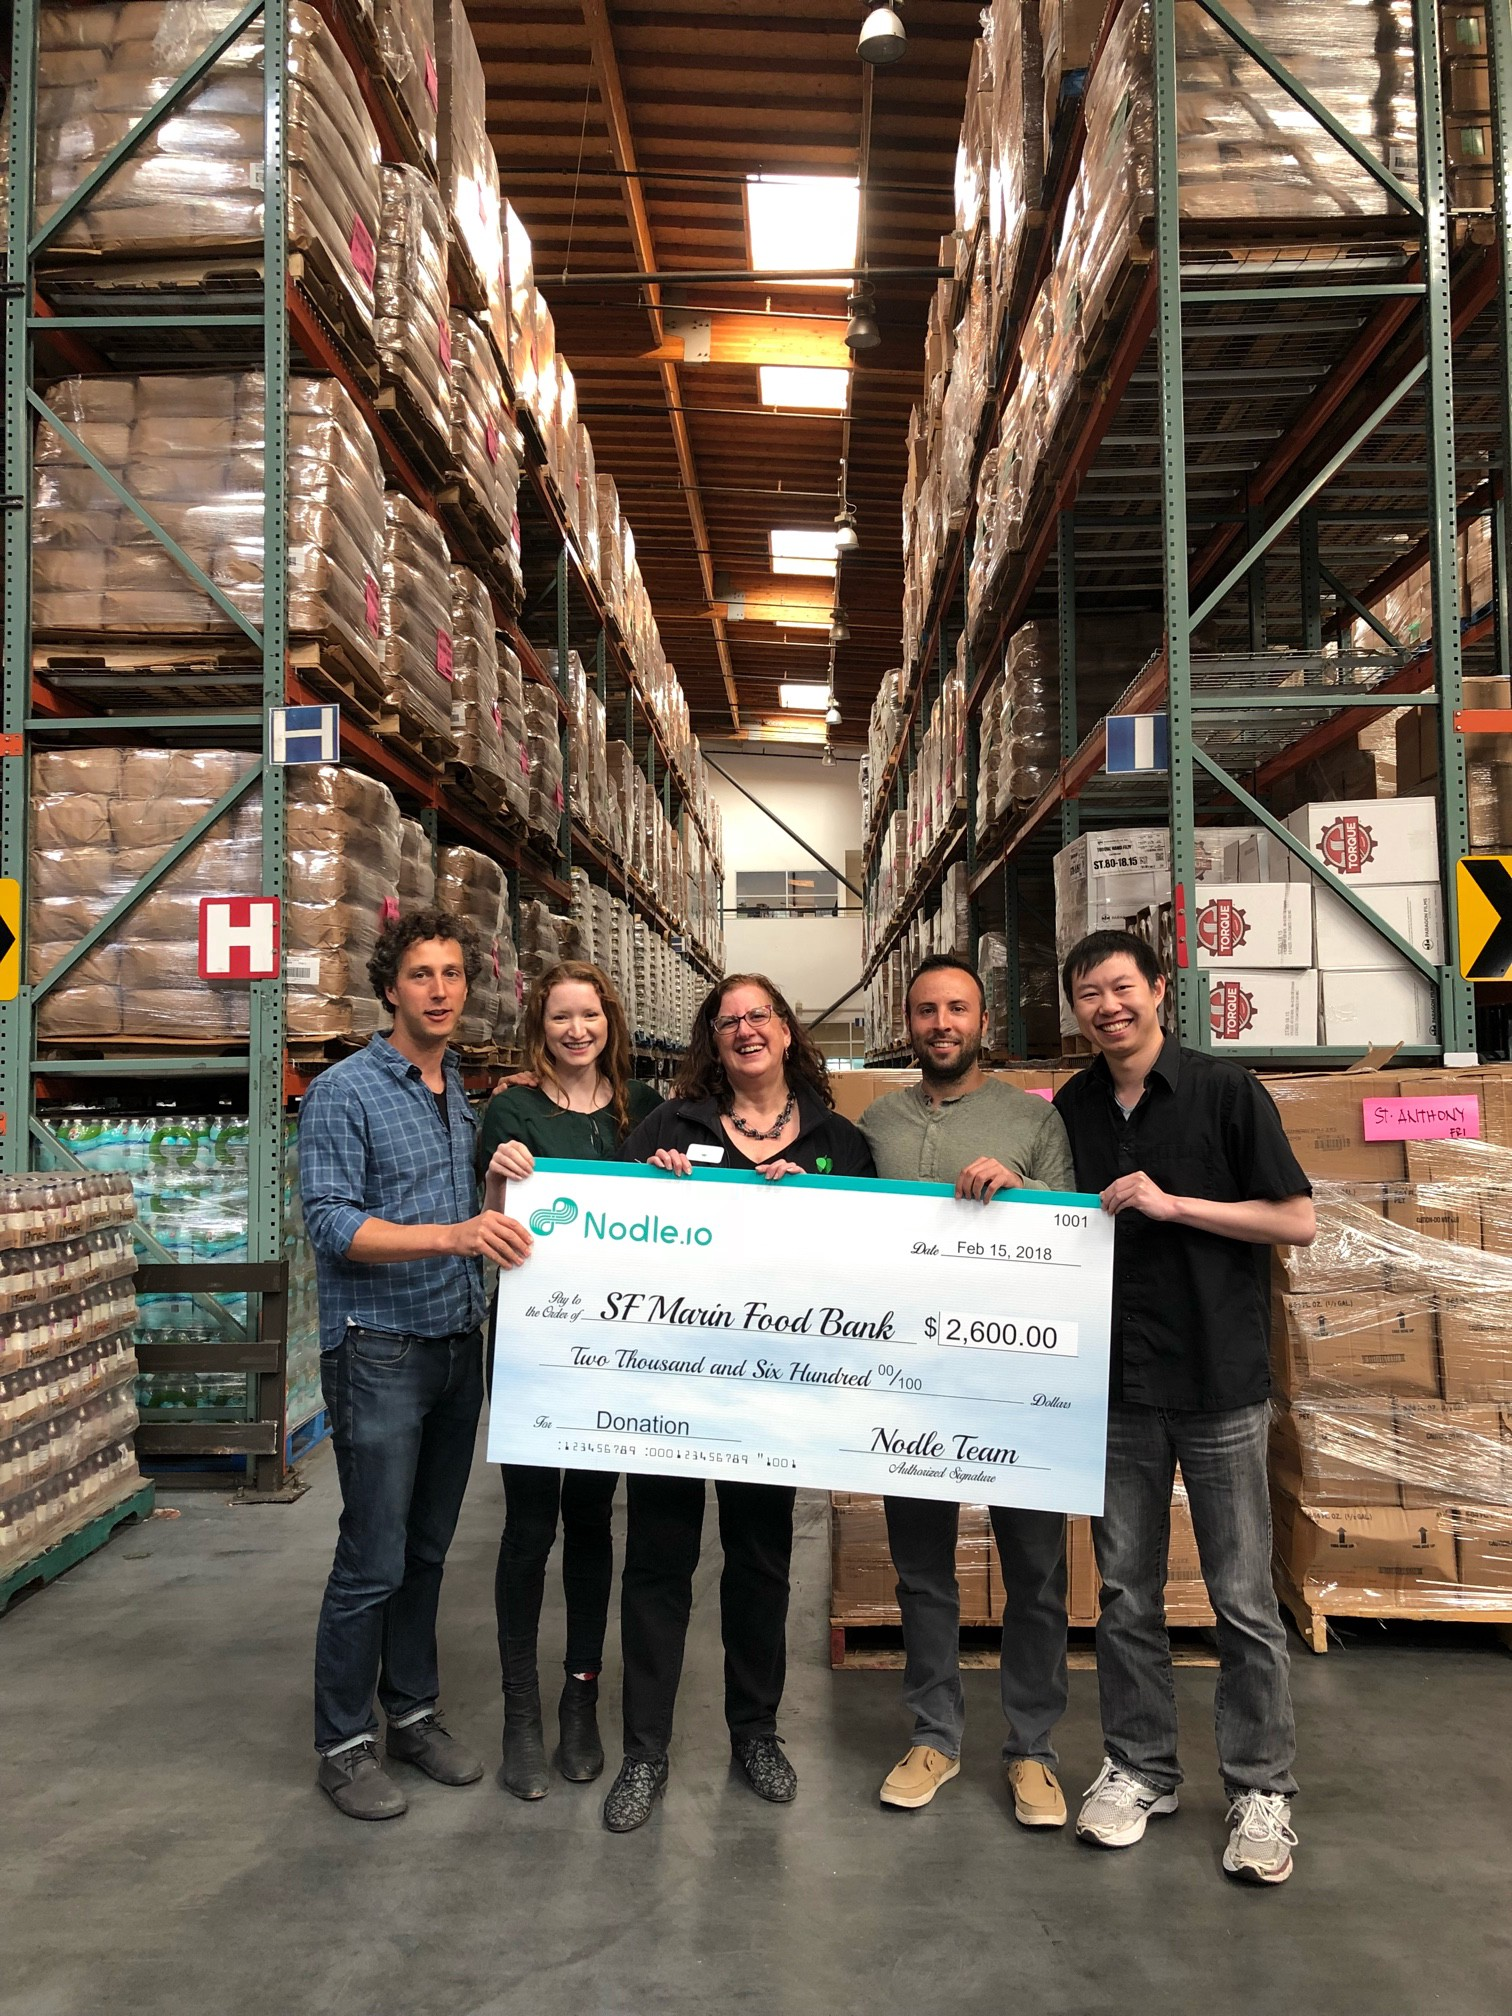 /you-helped-us-raise-2600-for-sf-marin-food-bank-13-000-worth-of-food-eca57de7d4a2 feature image